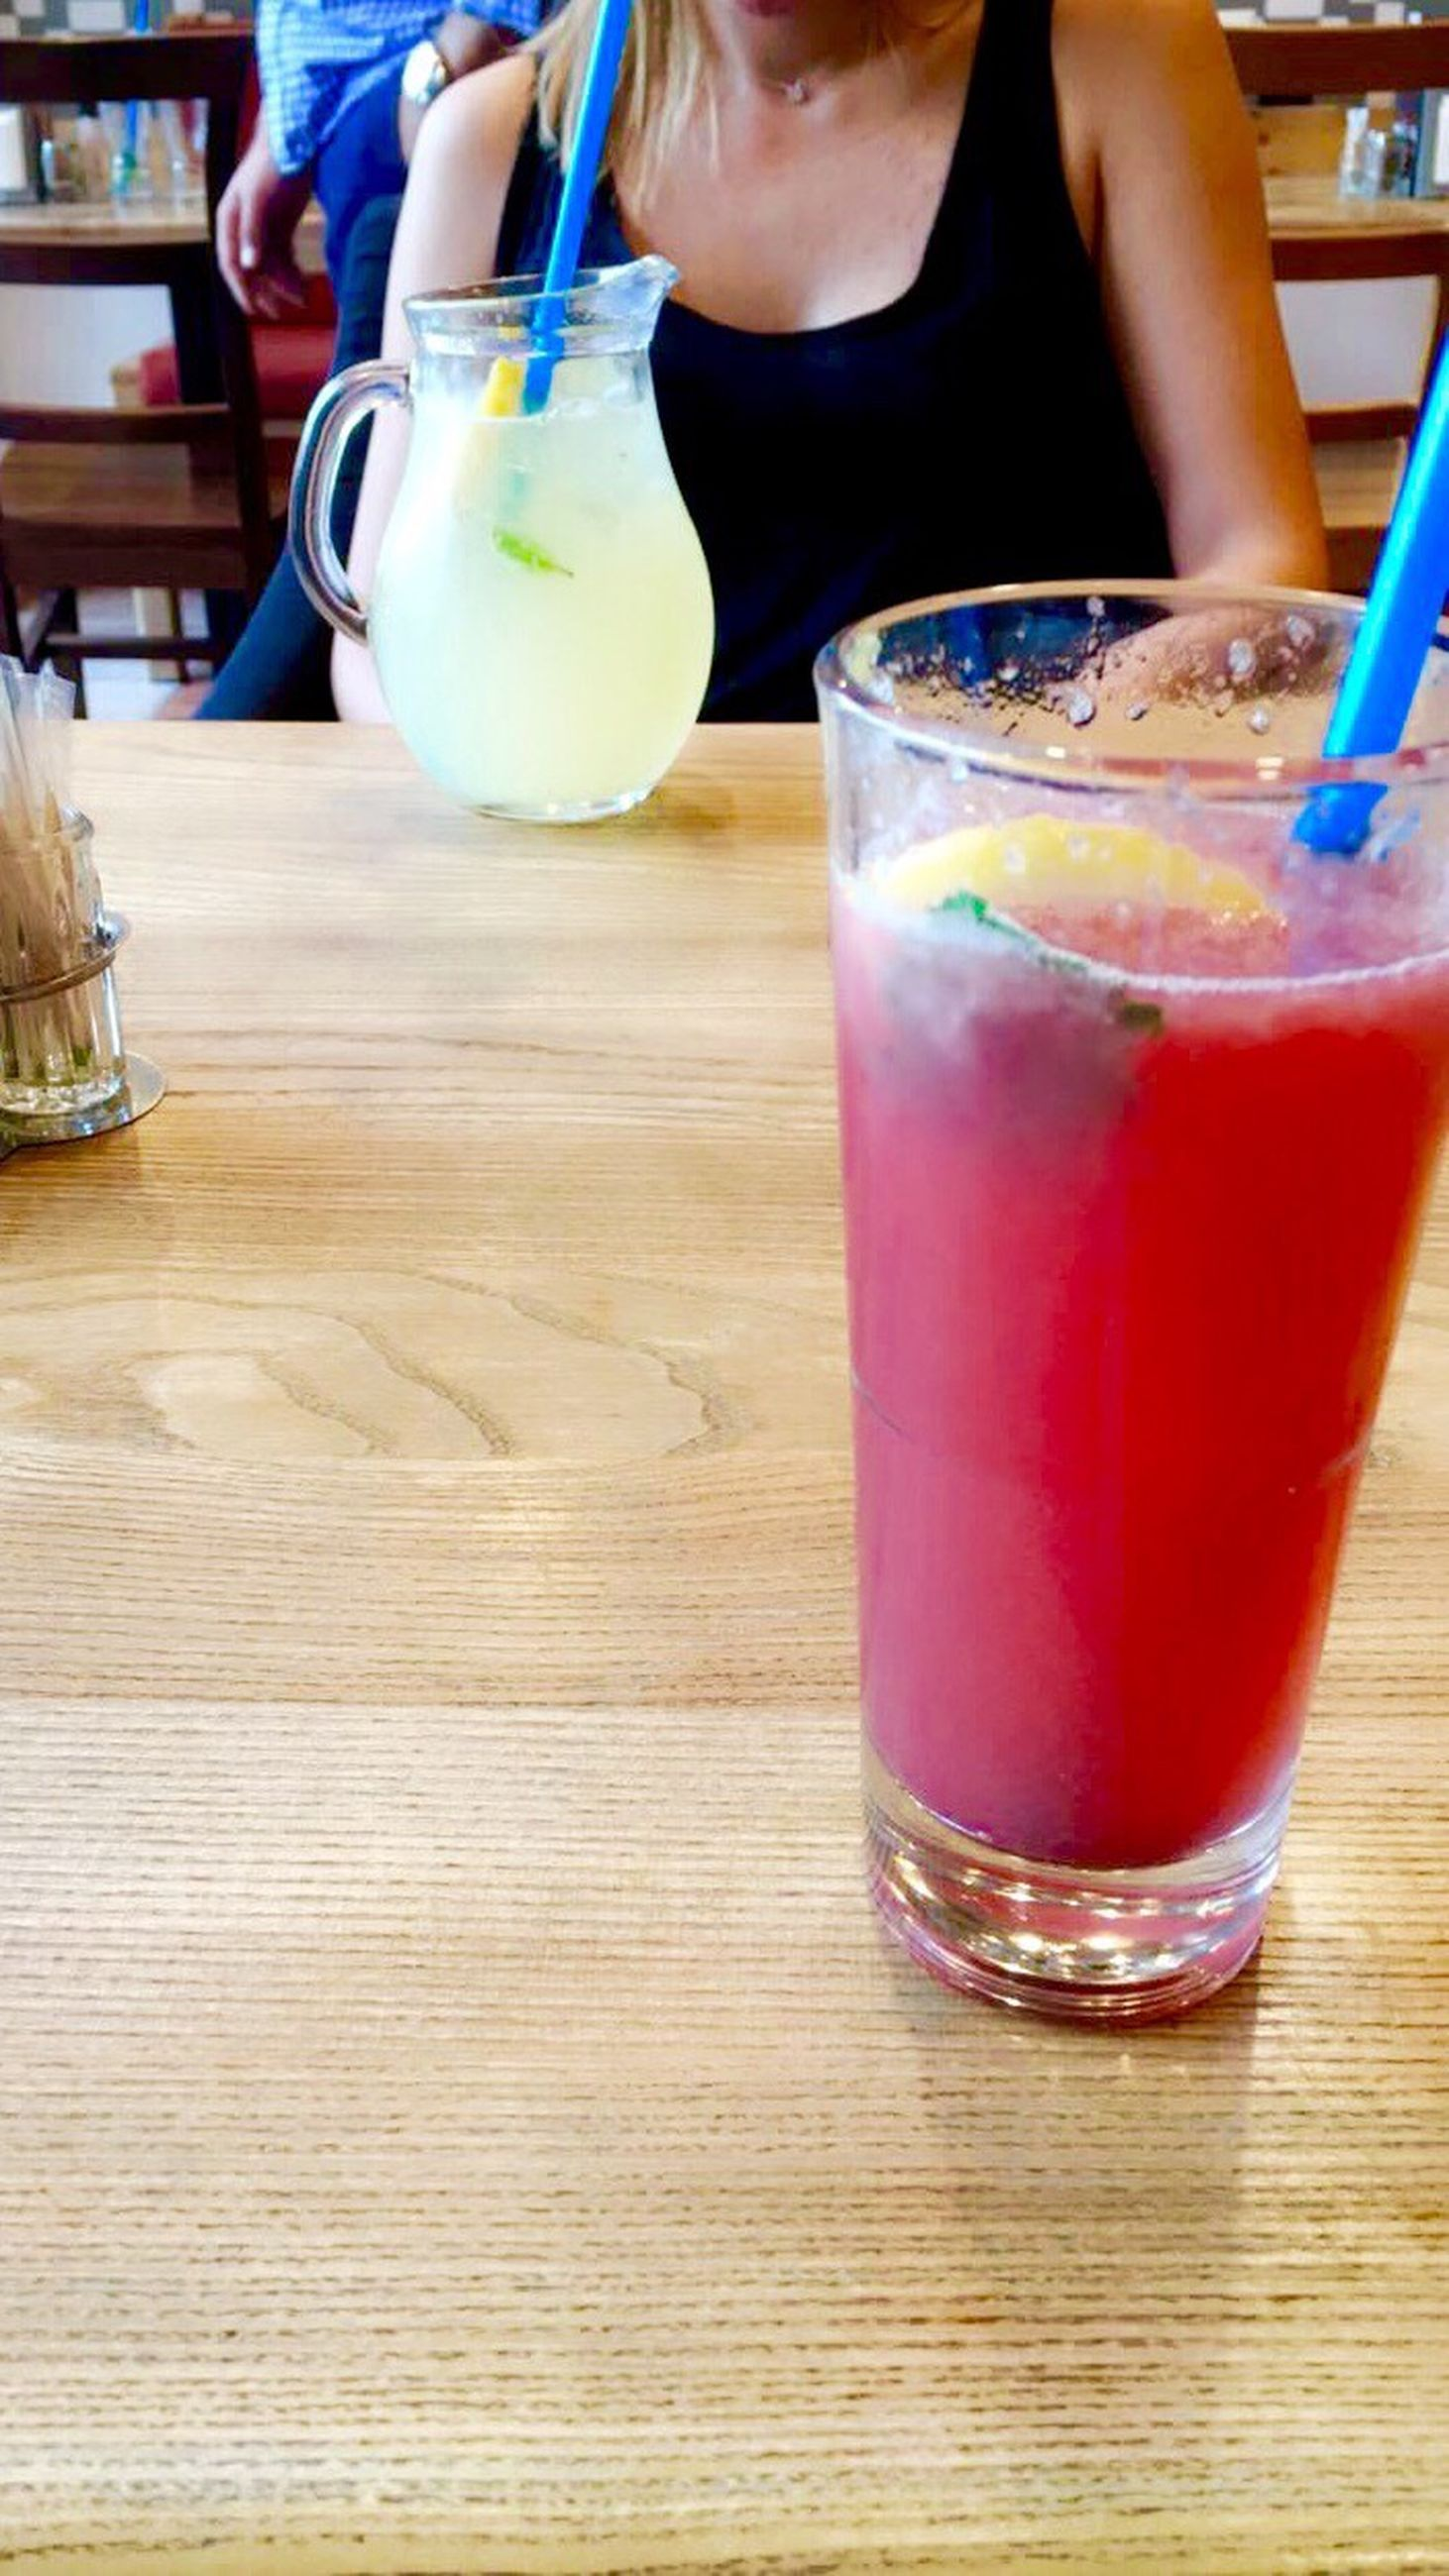 food and drink, refreshment, drink, freshness, table, drinking glass, indoors, drinking straw, cold temperature, healthy eating, pink color, serving size, non-alcoholic beverage